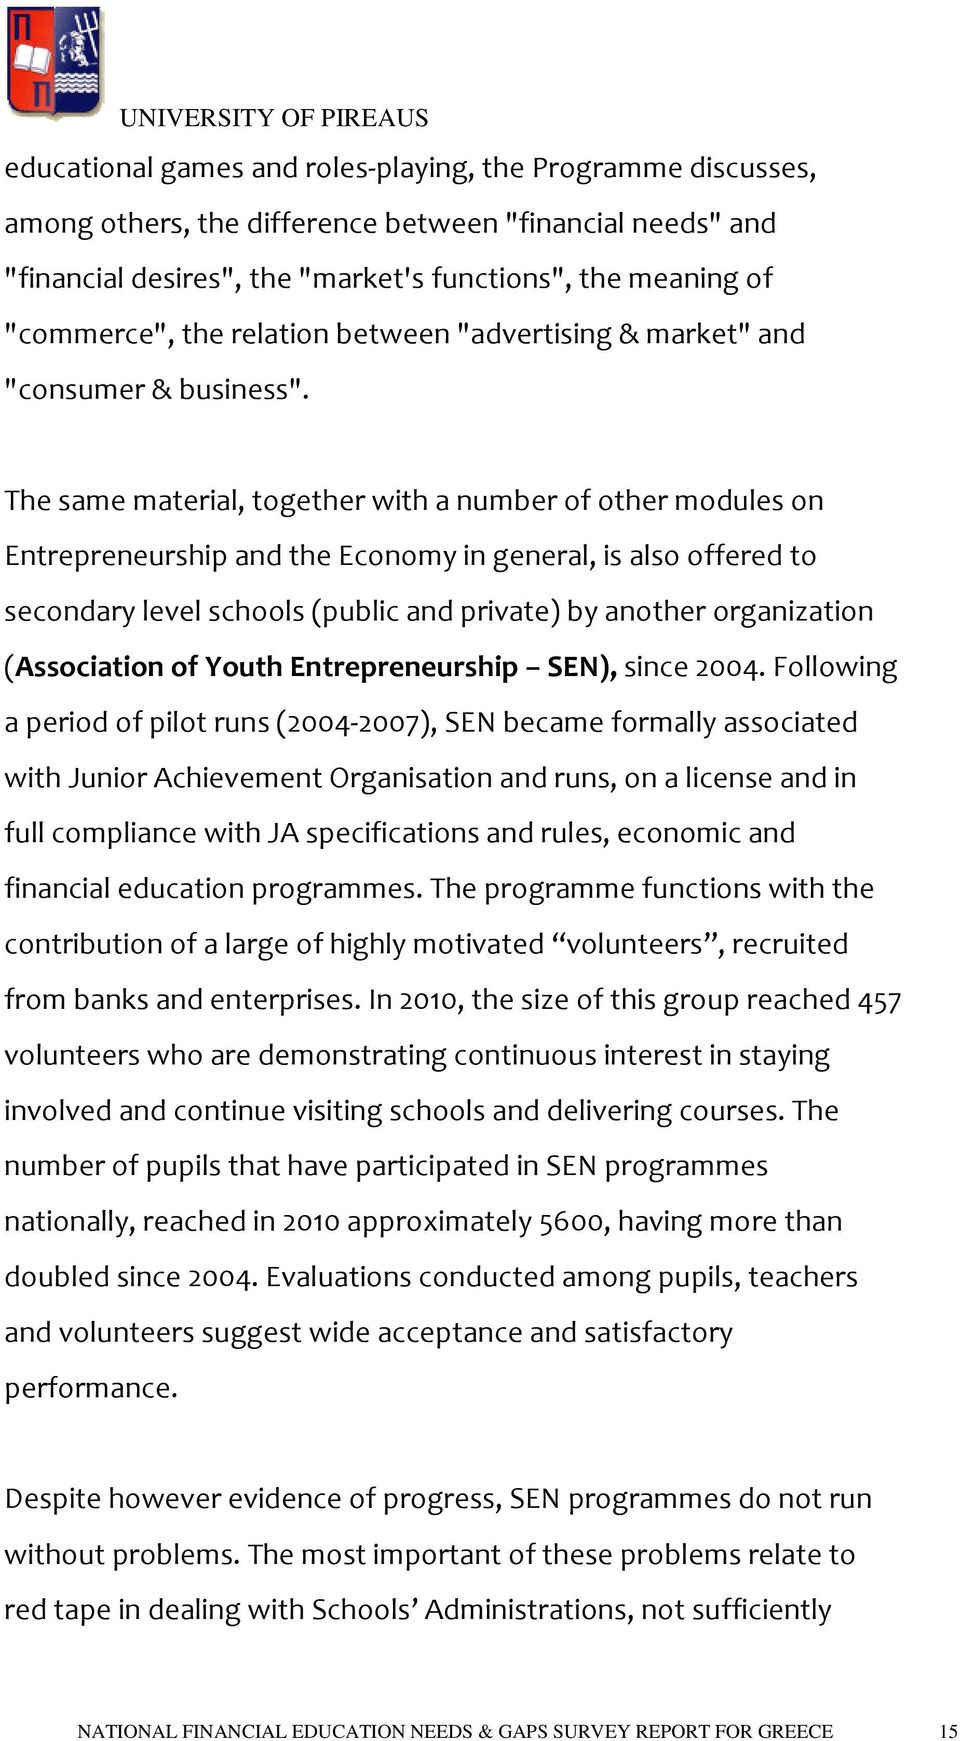 The same material, together with a number of other modules on Entrepreneurship and the Economy in general, is also offered to secondary level schools (public and private) by another organization